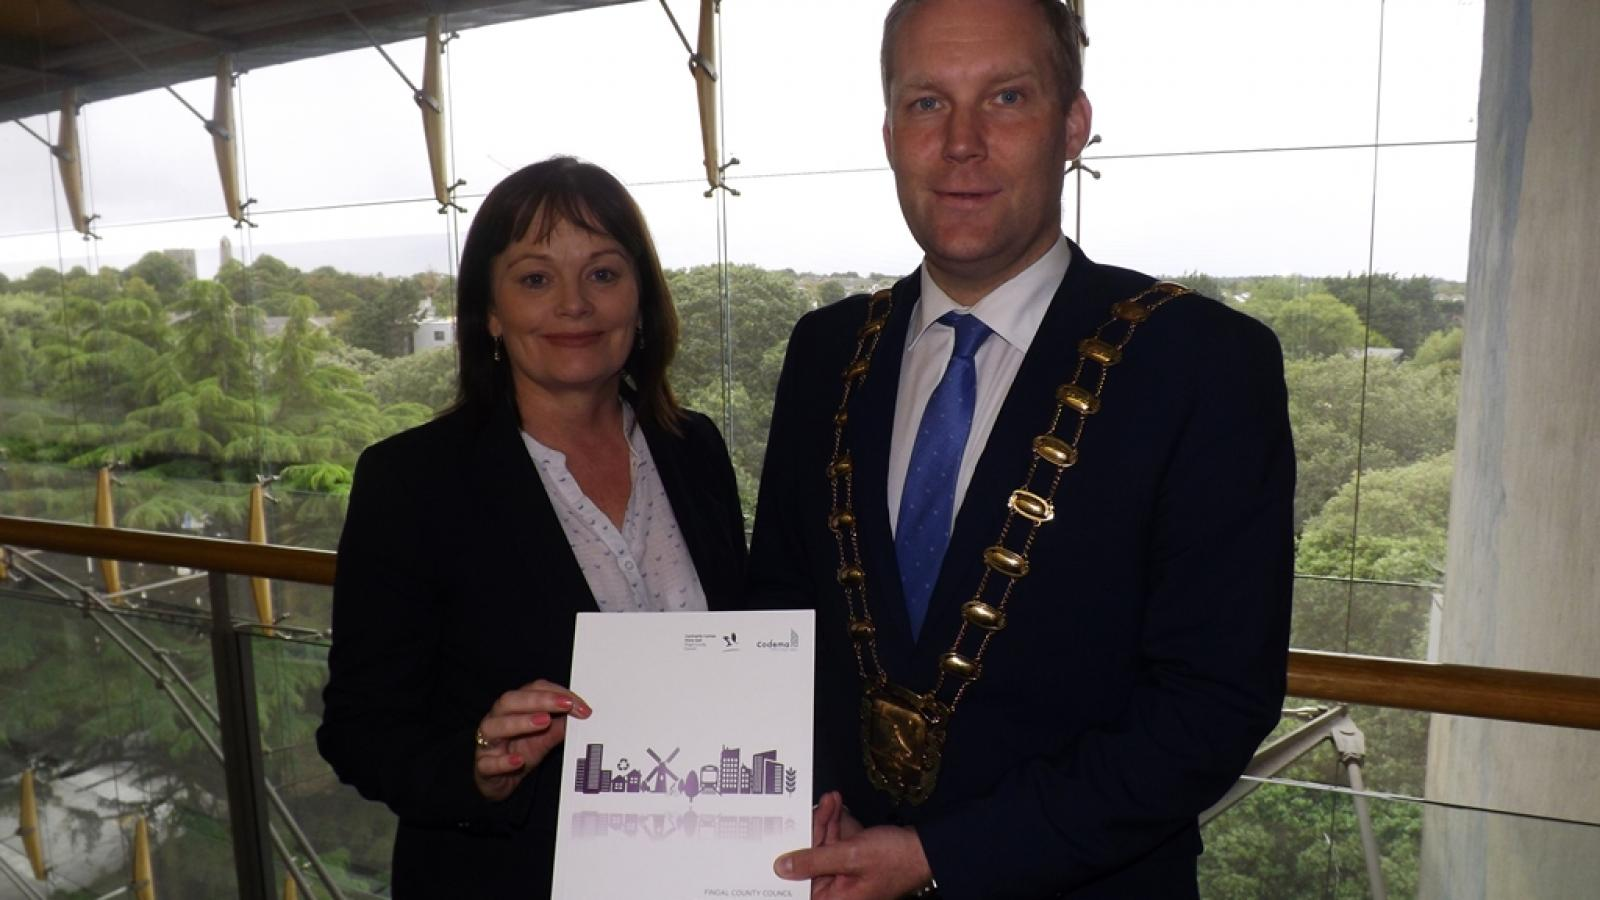 Pictured at the launch of Fingal County Council's Climate Change Action Plan 2019-2024 are Interim Chief Executive AnnMarie Farrelly and Mayor of Fingal Cllr Eoghan O'Brien.